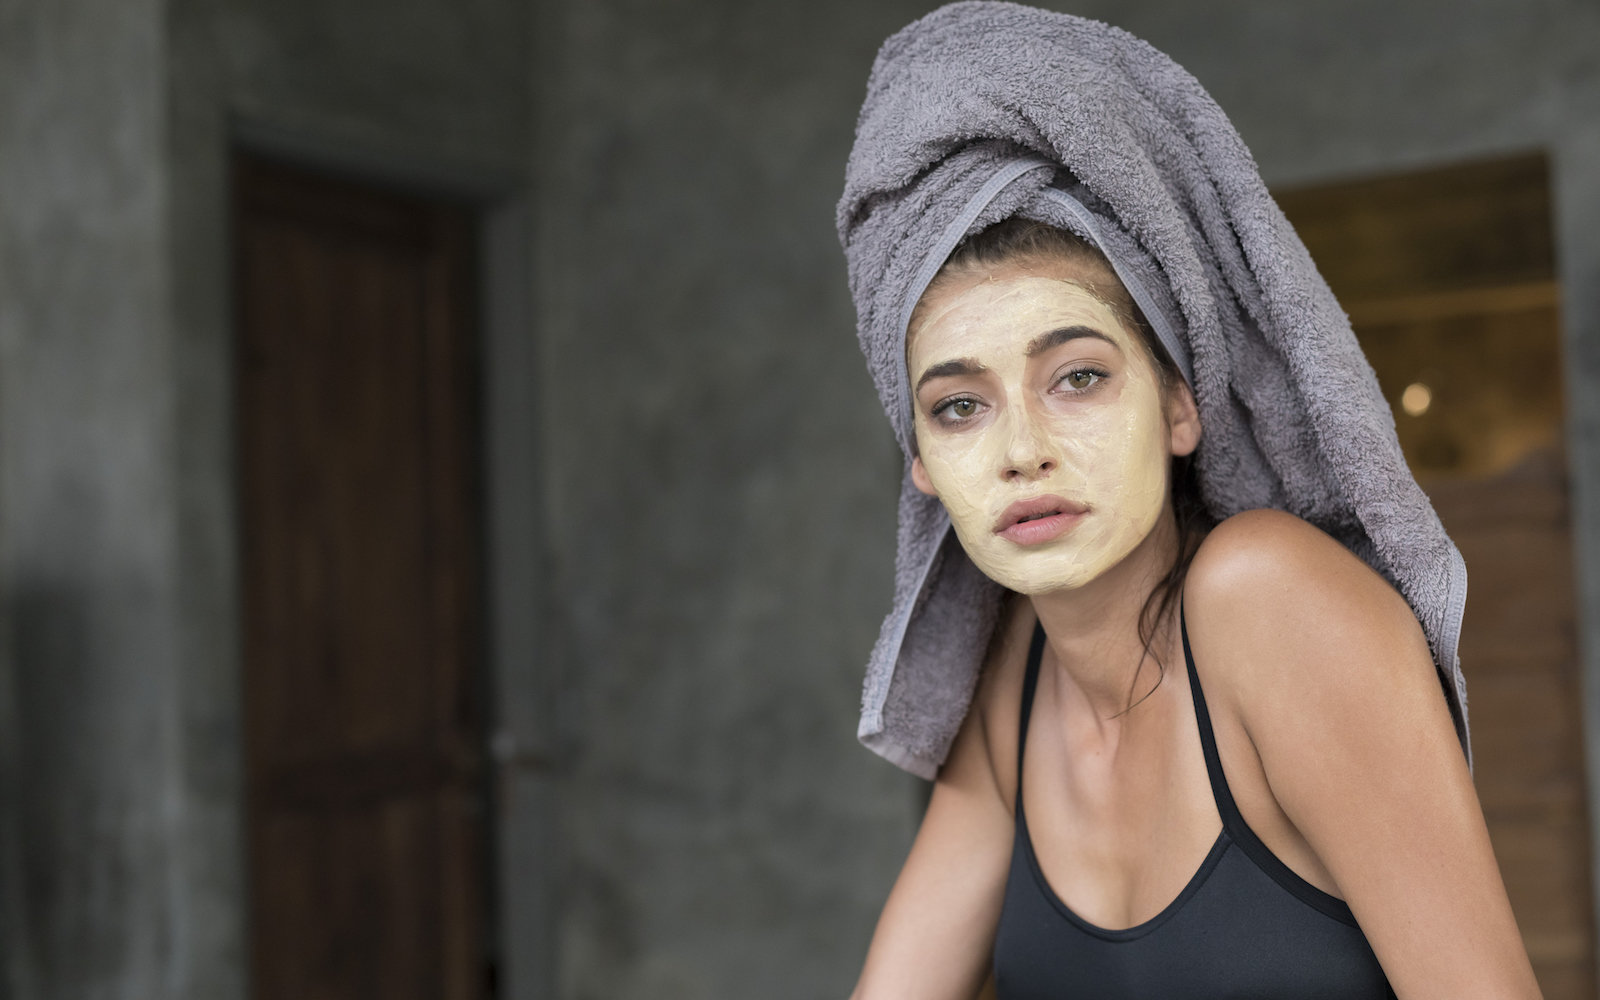 Woman with a face mask and a towel on her head